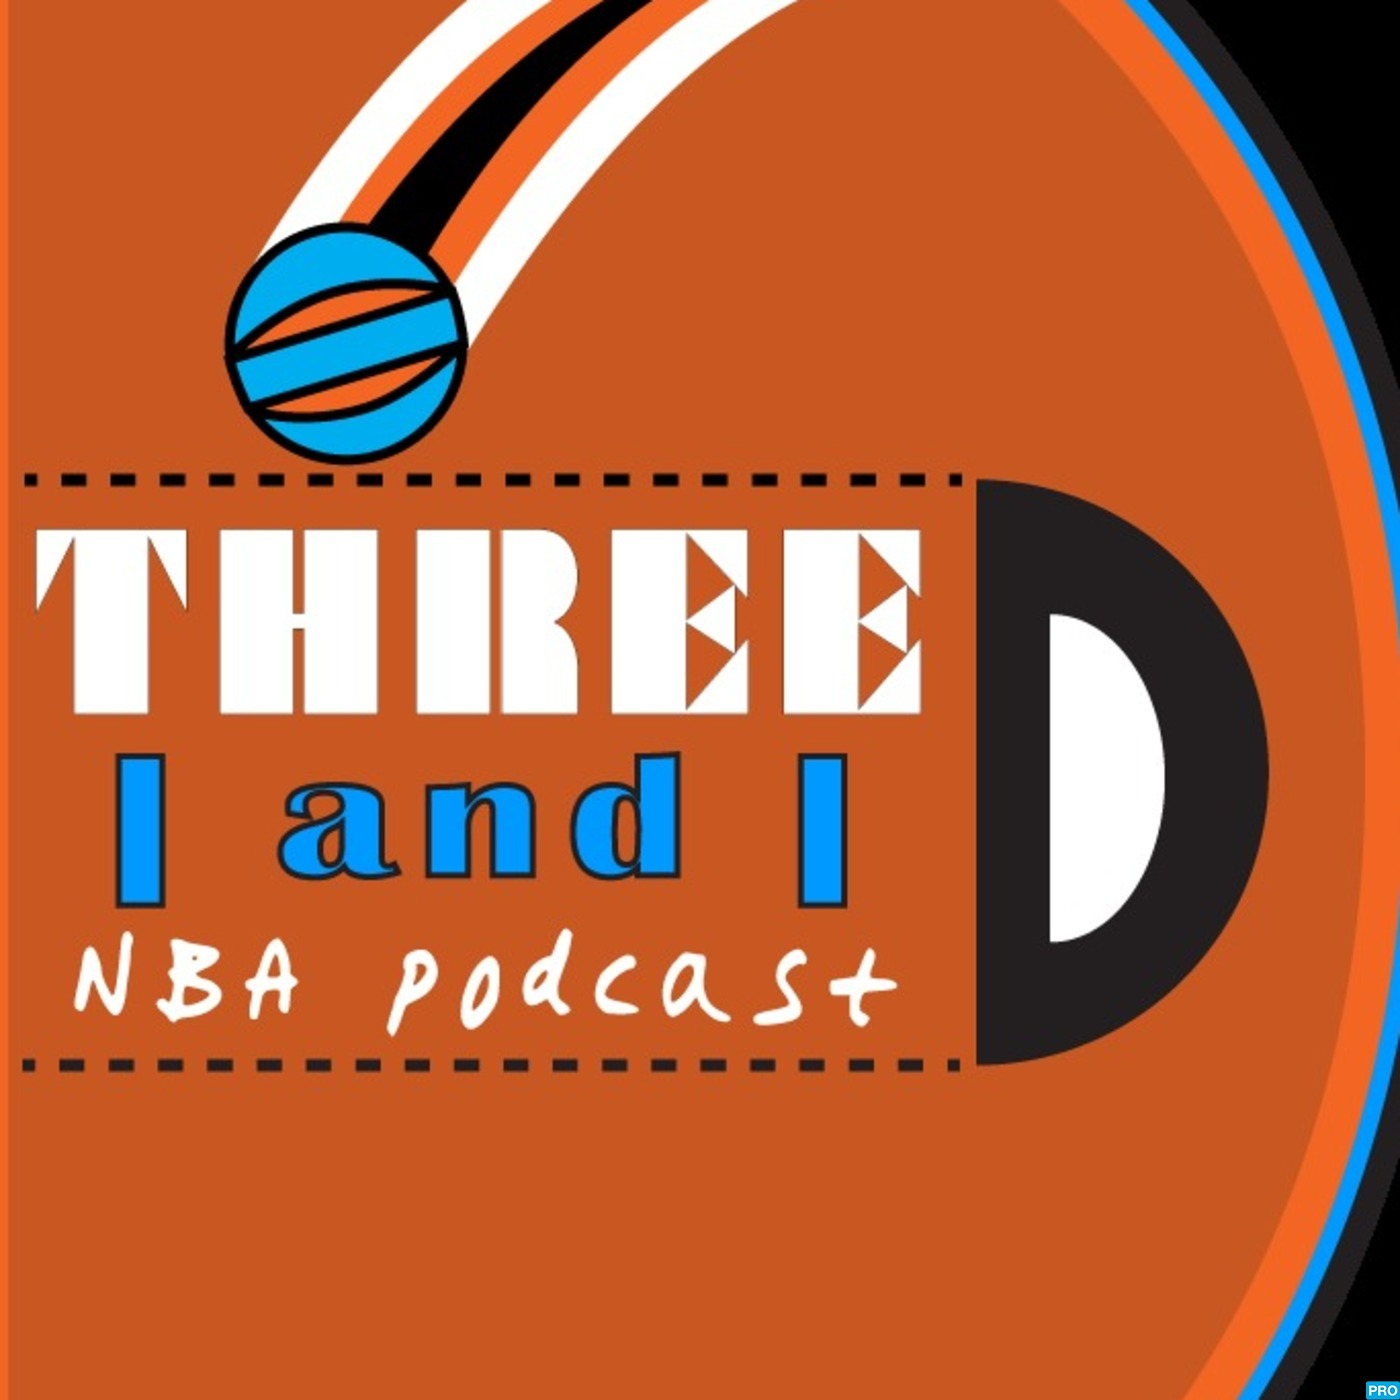 Three and D Podcast